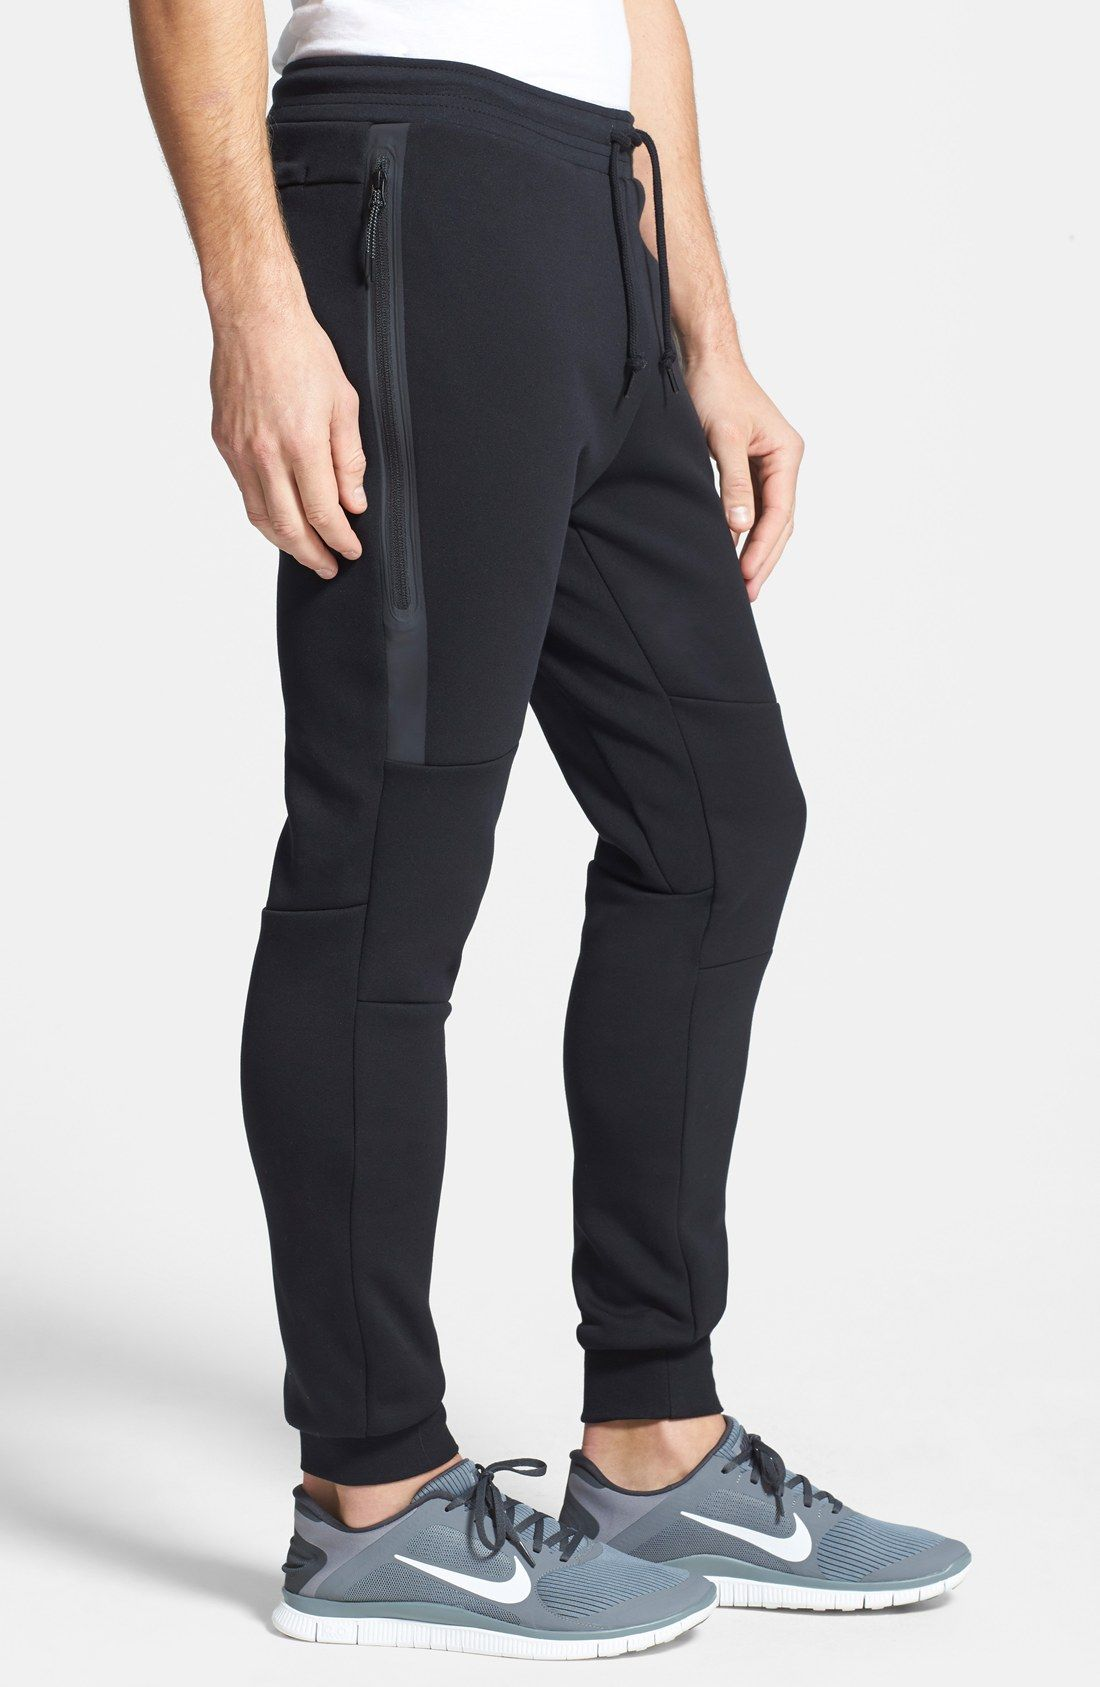 0ae4ee36dd7 $100 - Nike 'Tech Fleece' Pants | Pour L'Homme - Outdoor Gear | Nike ...